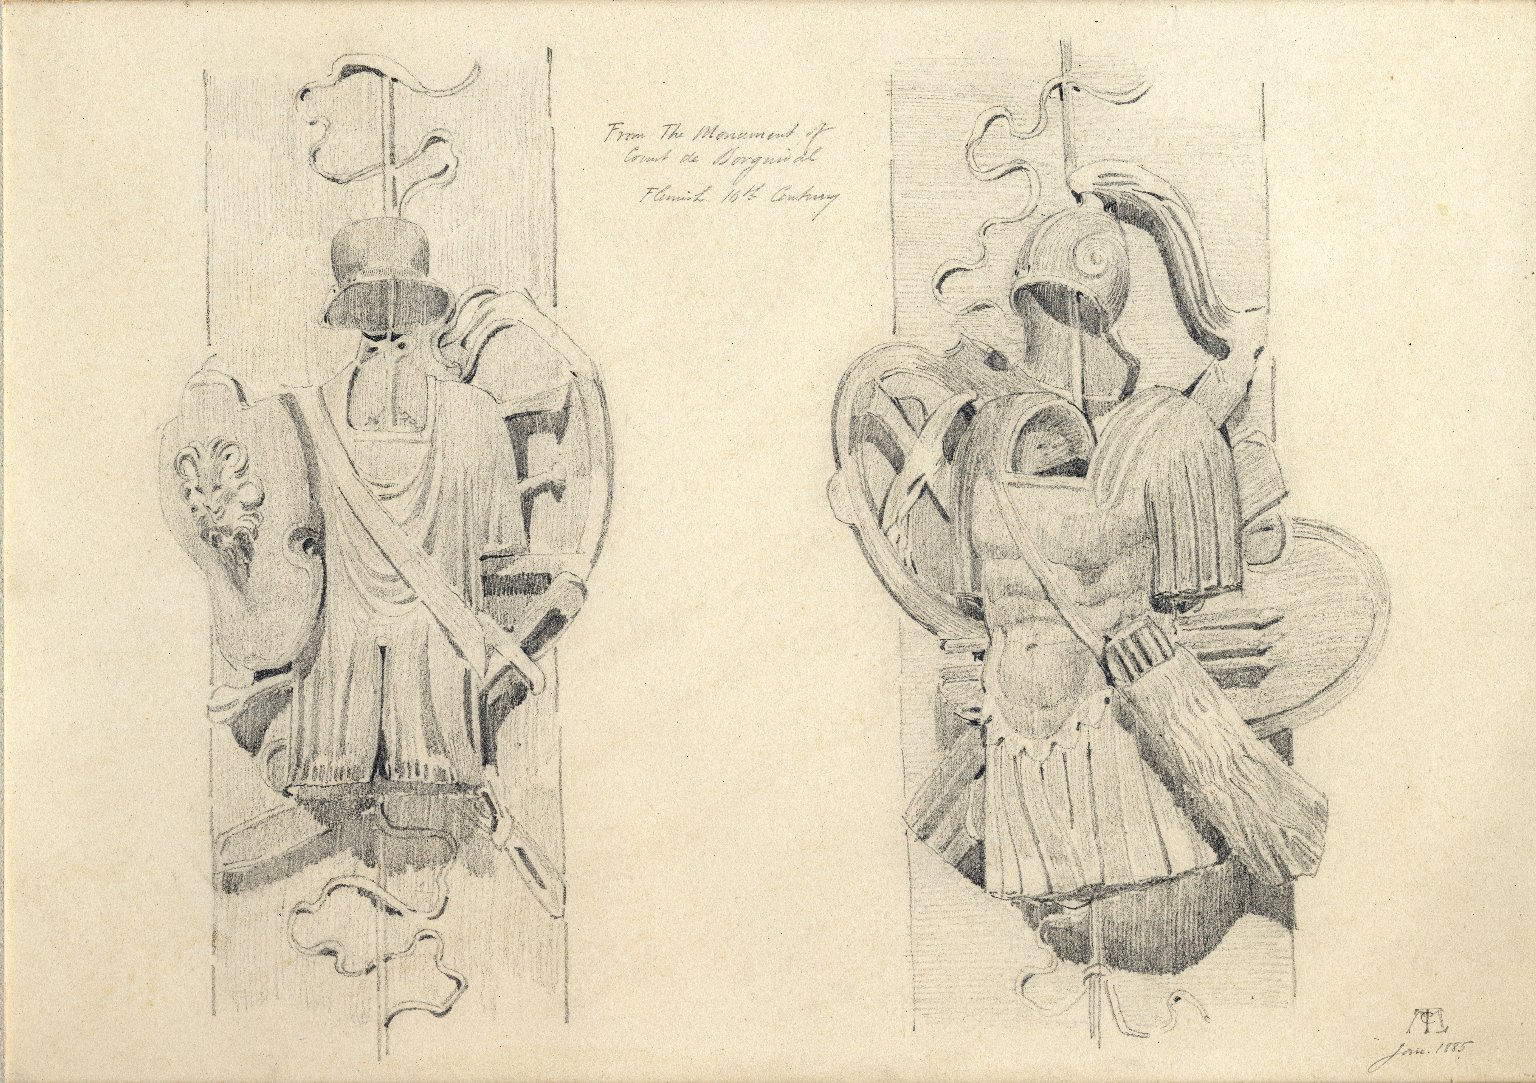 Armors from Monument of the Count de Borgnival